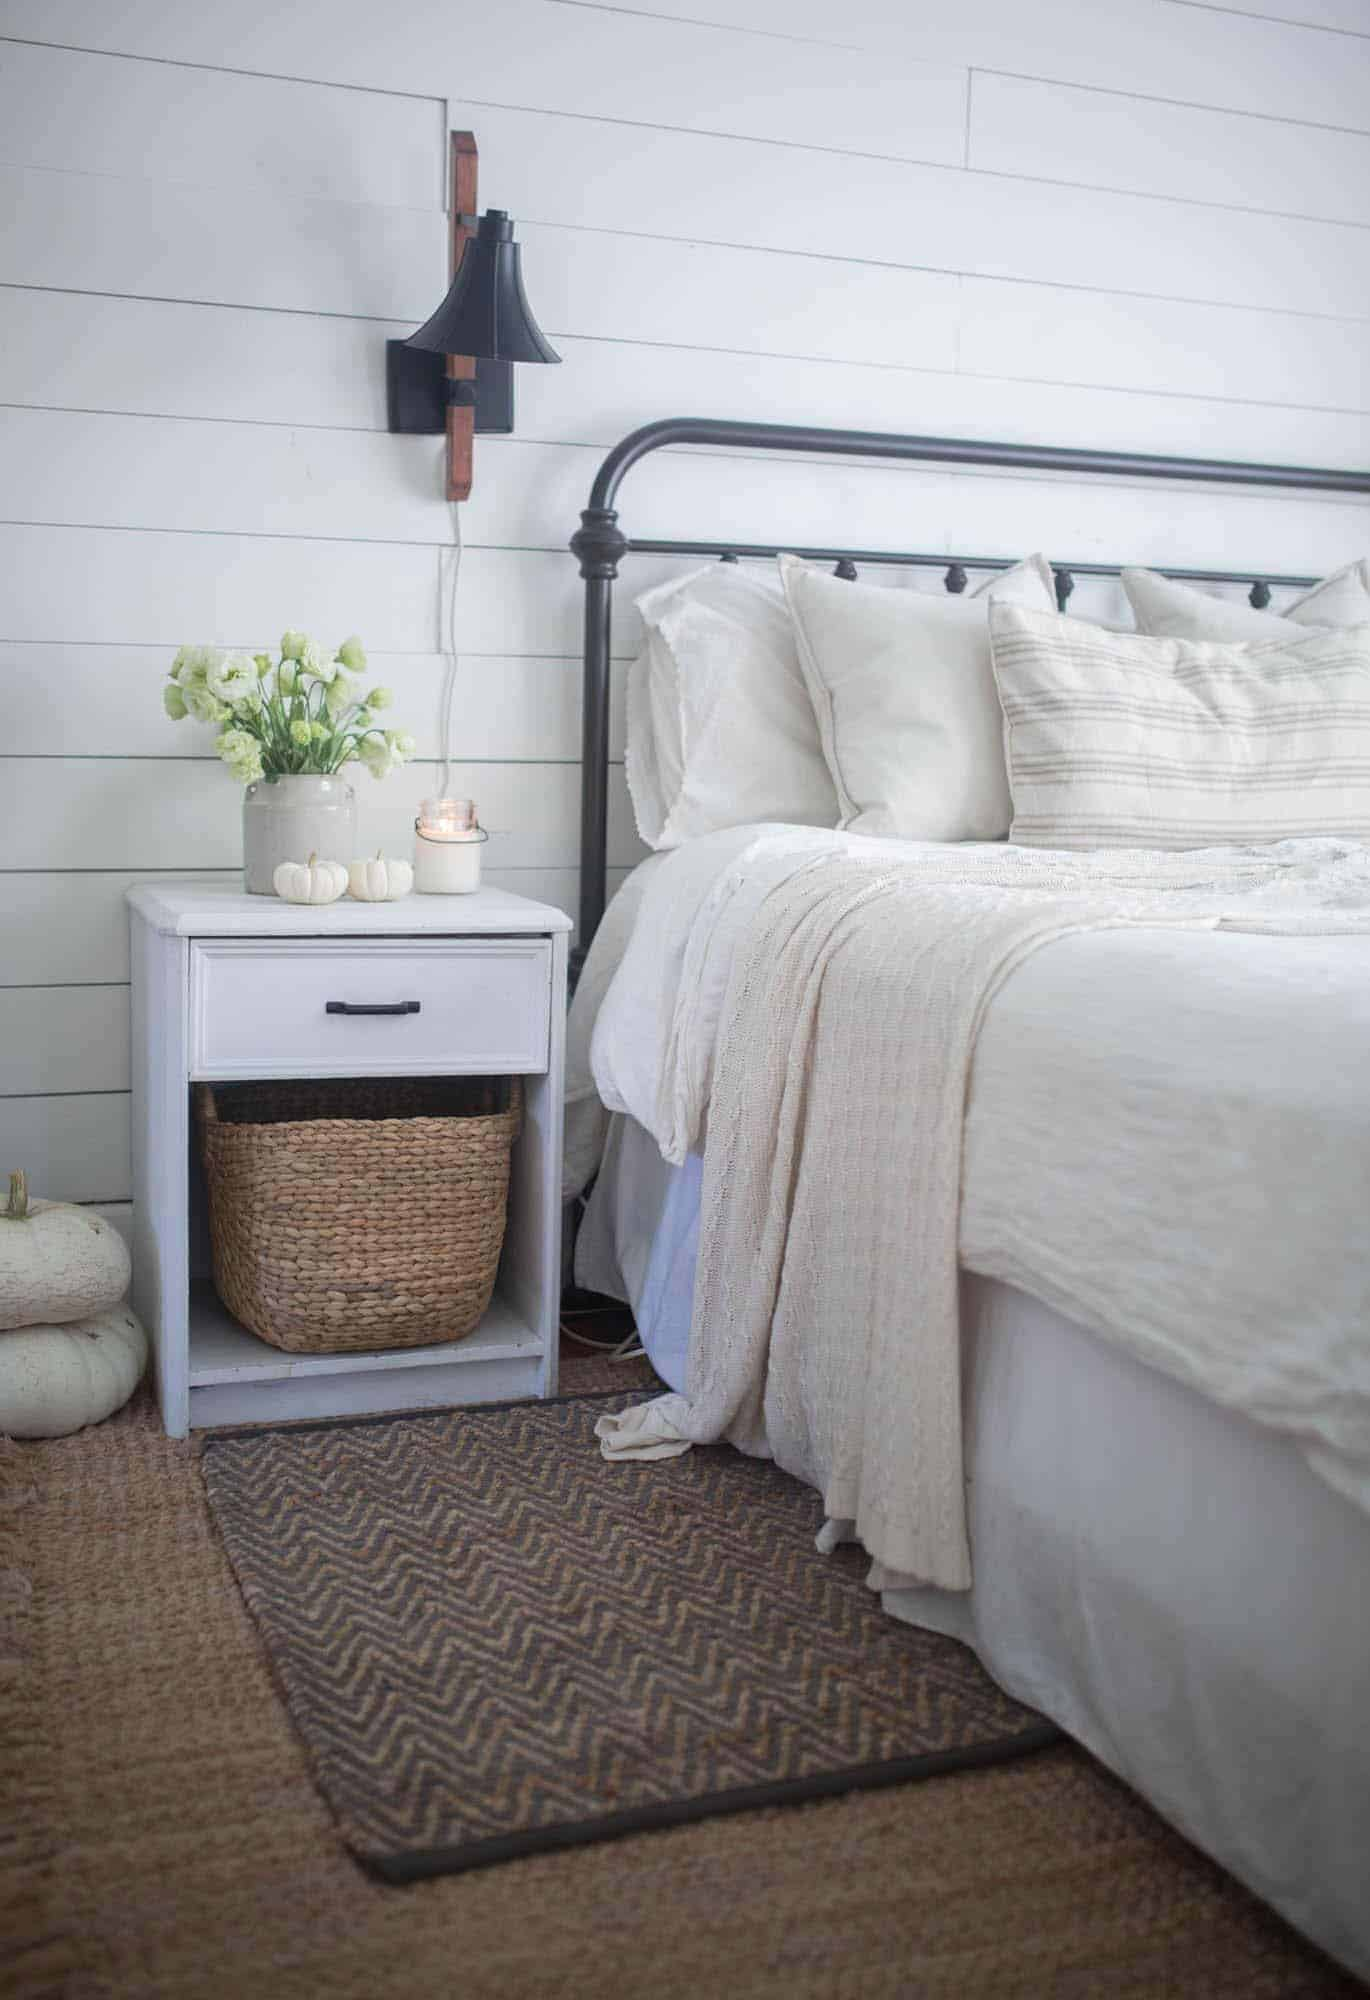 Bedroom-Decorating-Ideas-For-Autumn-15-1-Kindesign